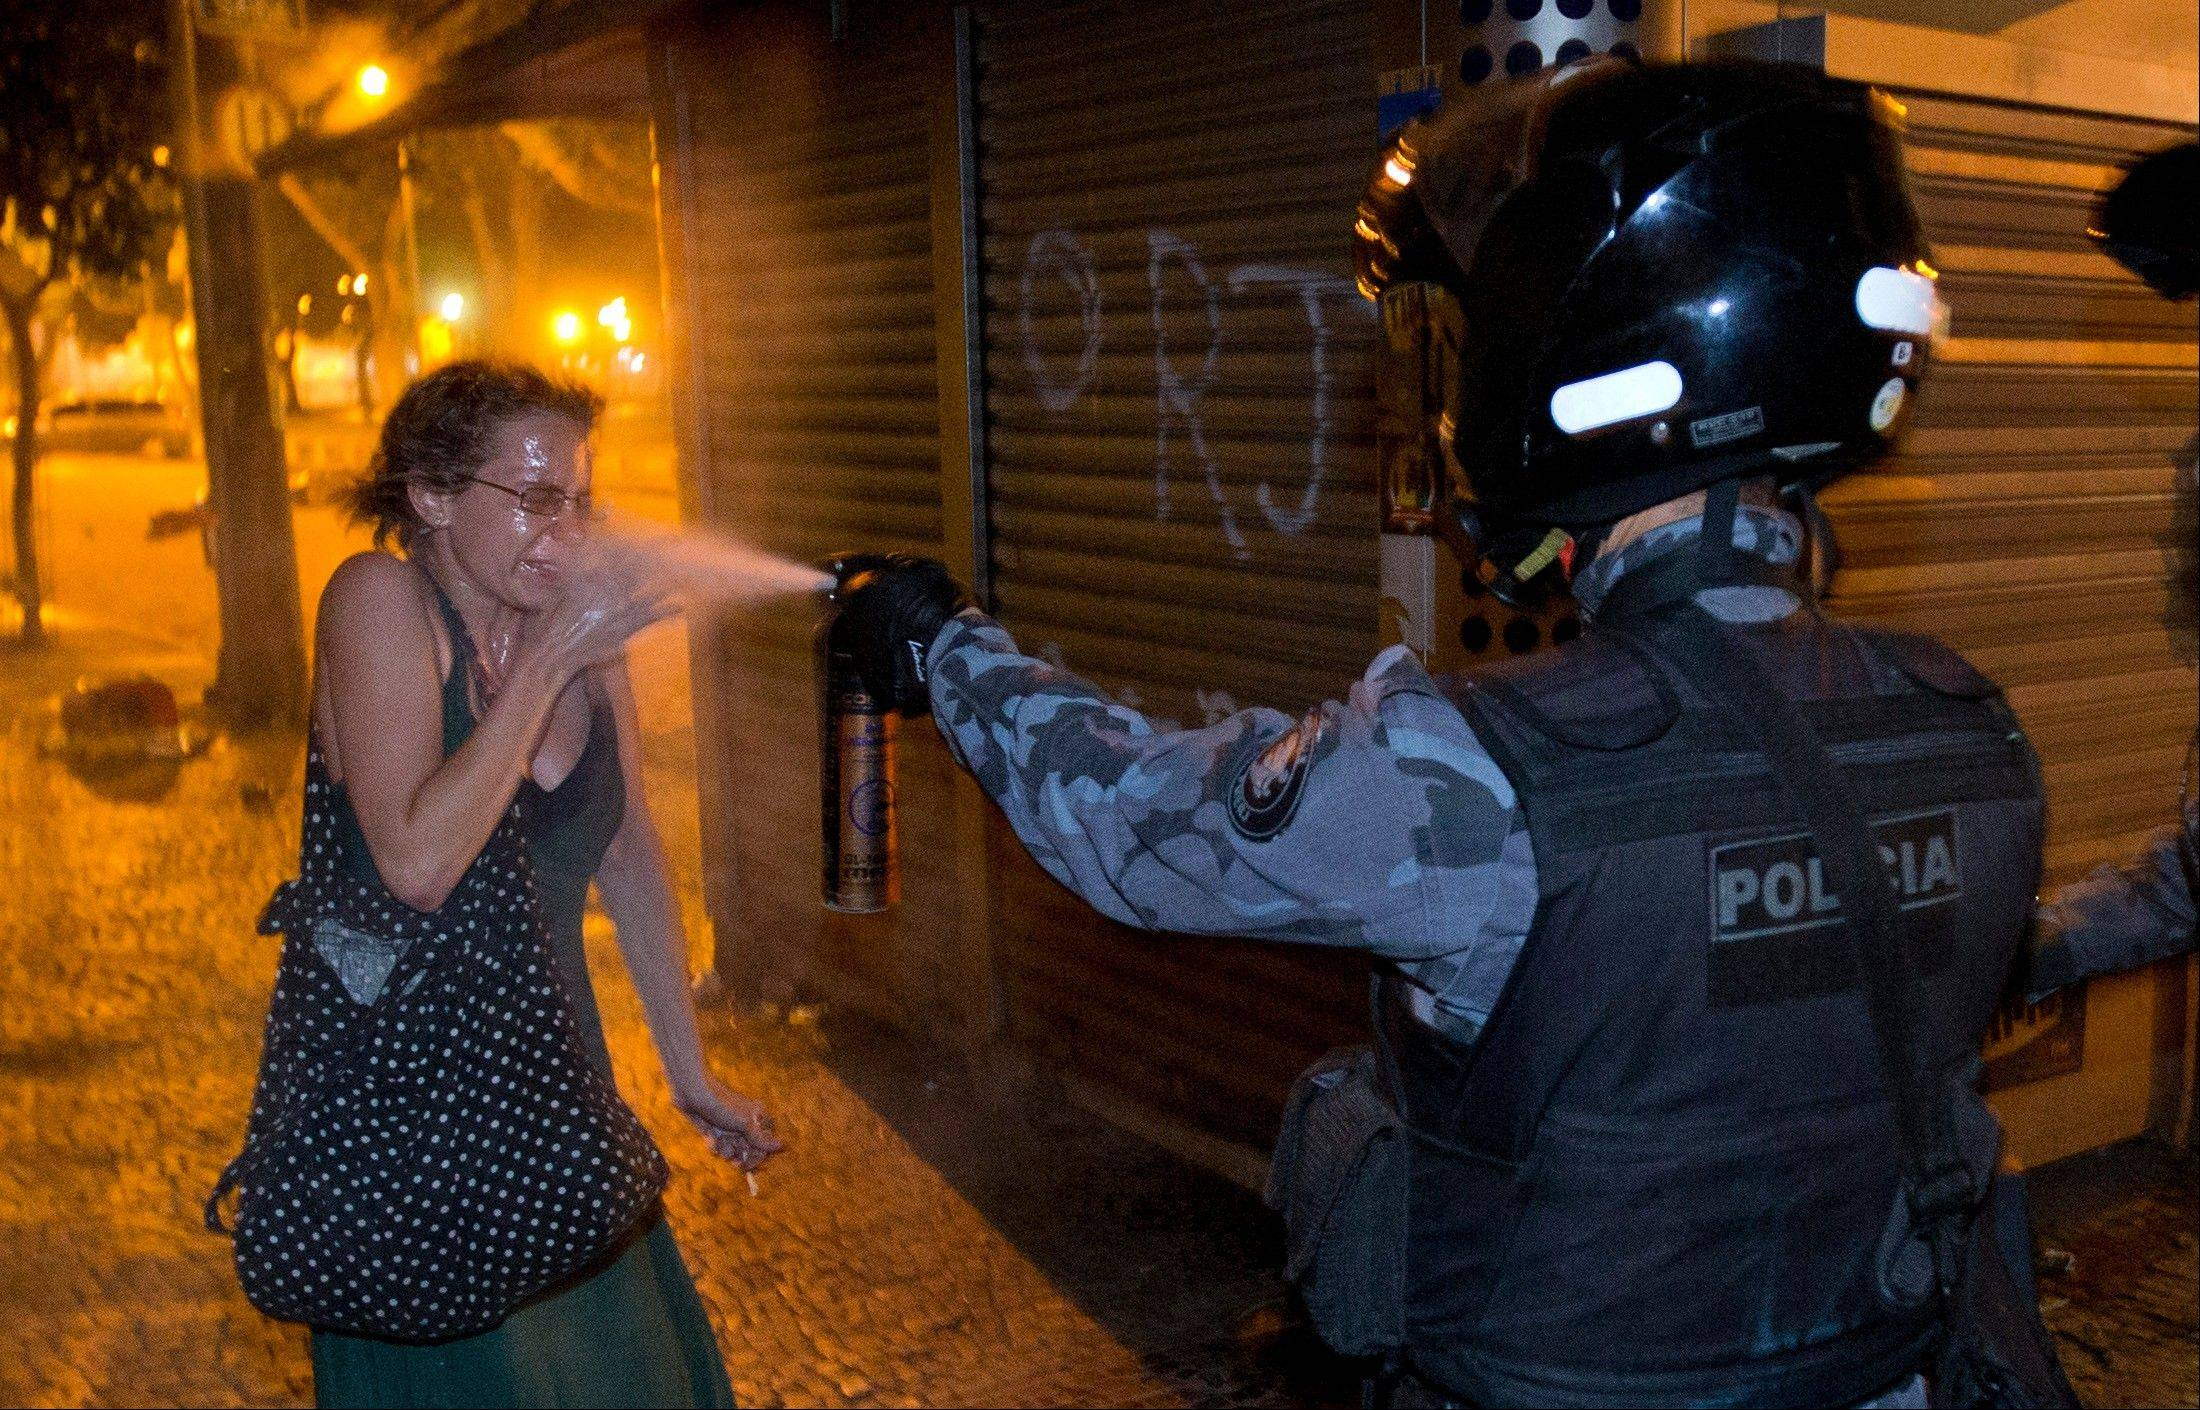 A military police officer uses pepper spray on a protester during a demonstration in Rio de Janeiro, Brazil, Monday, June 17, 2013. Protesters massed in Brazilian cities Monday for another round of demonstrations voicing disgruntlement about life in the country.